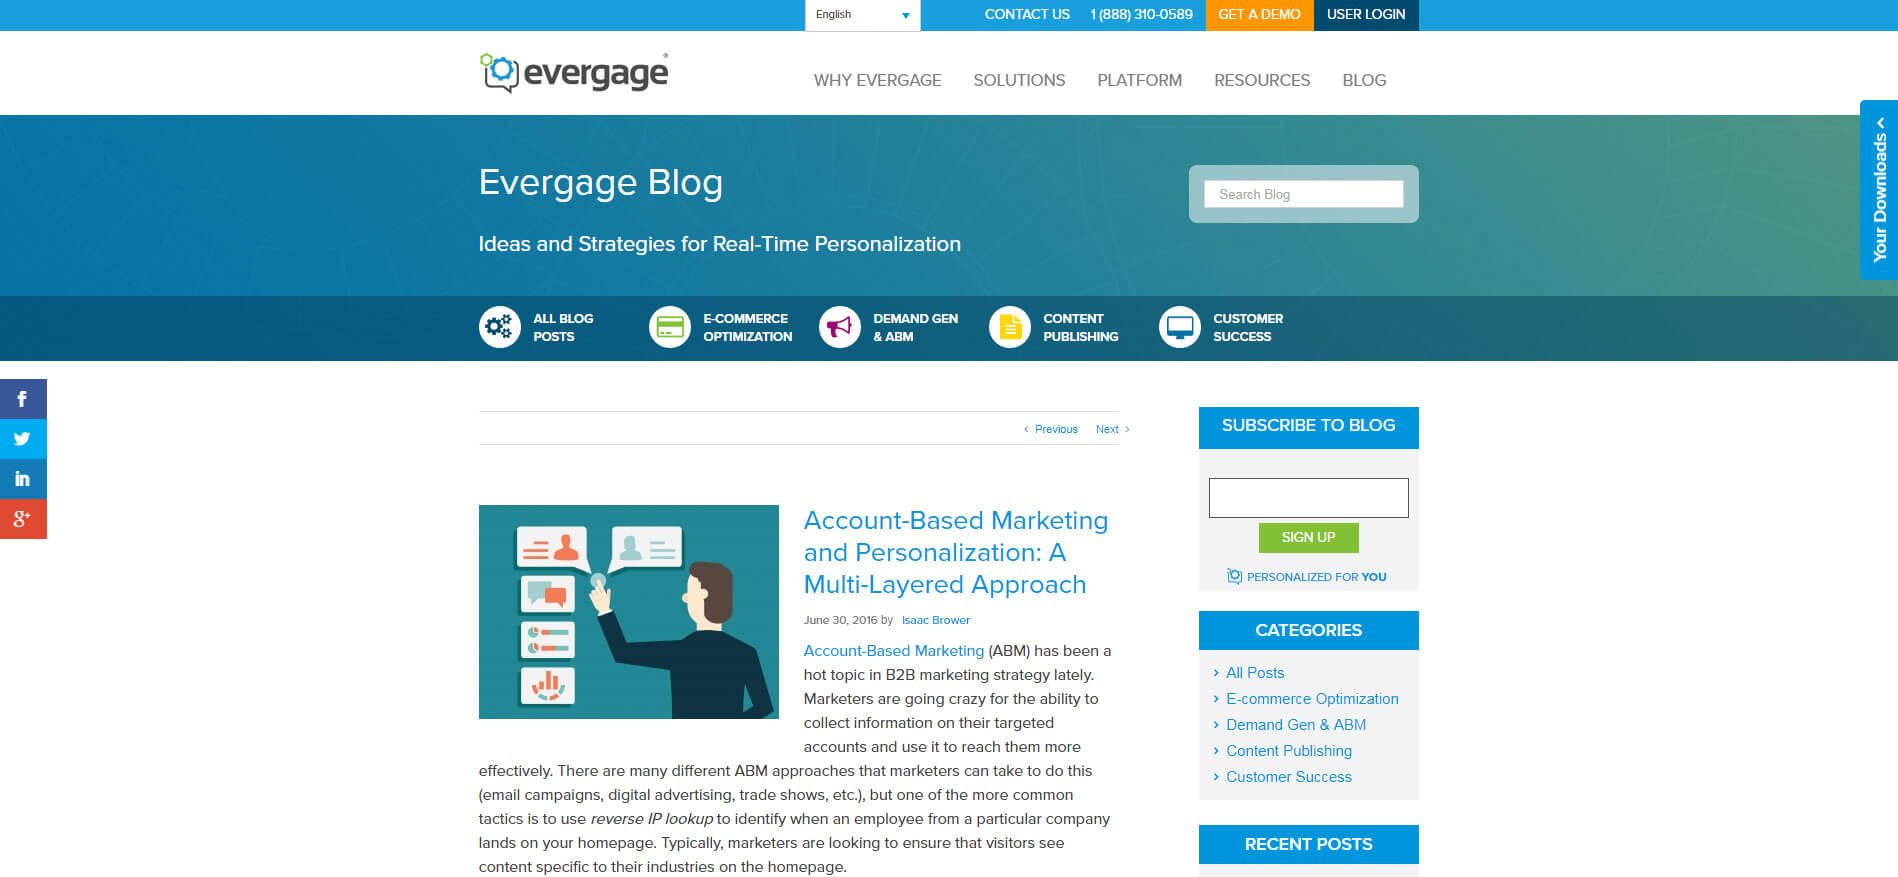 email-list-Opt-in-form-sidebar-evergage